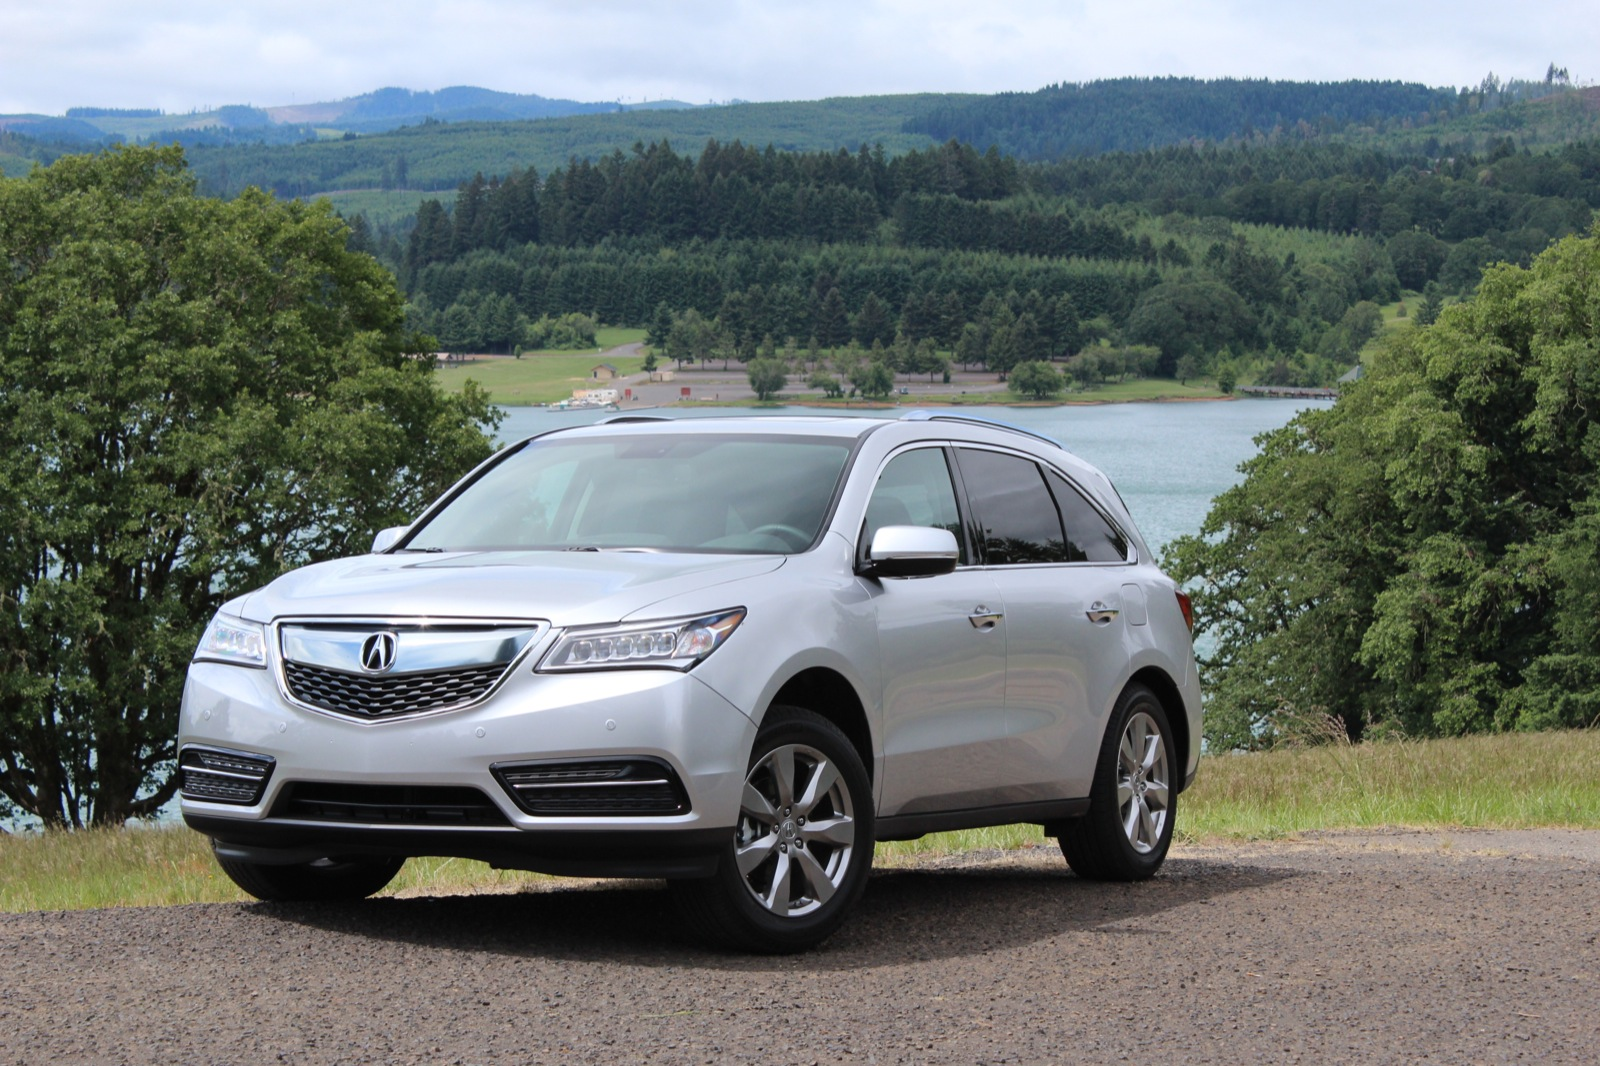 acura ca reviews research options specs photos mdx autotrader price trims